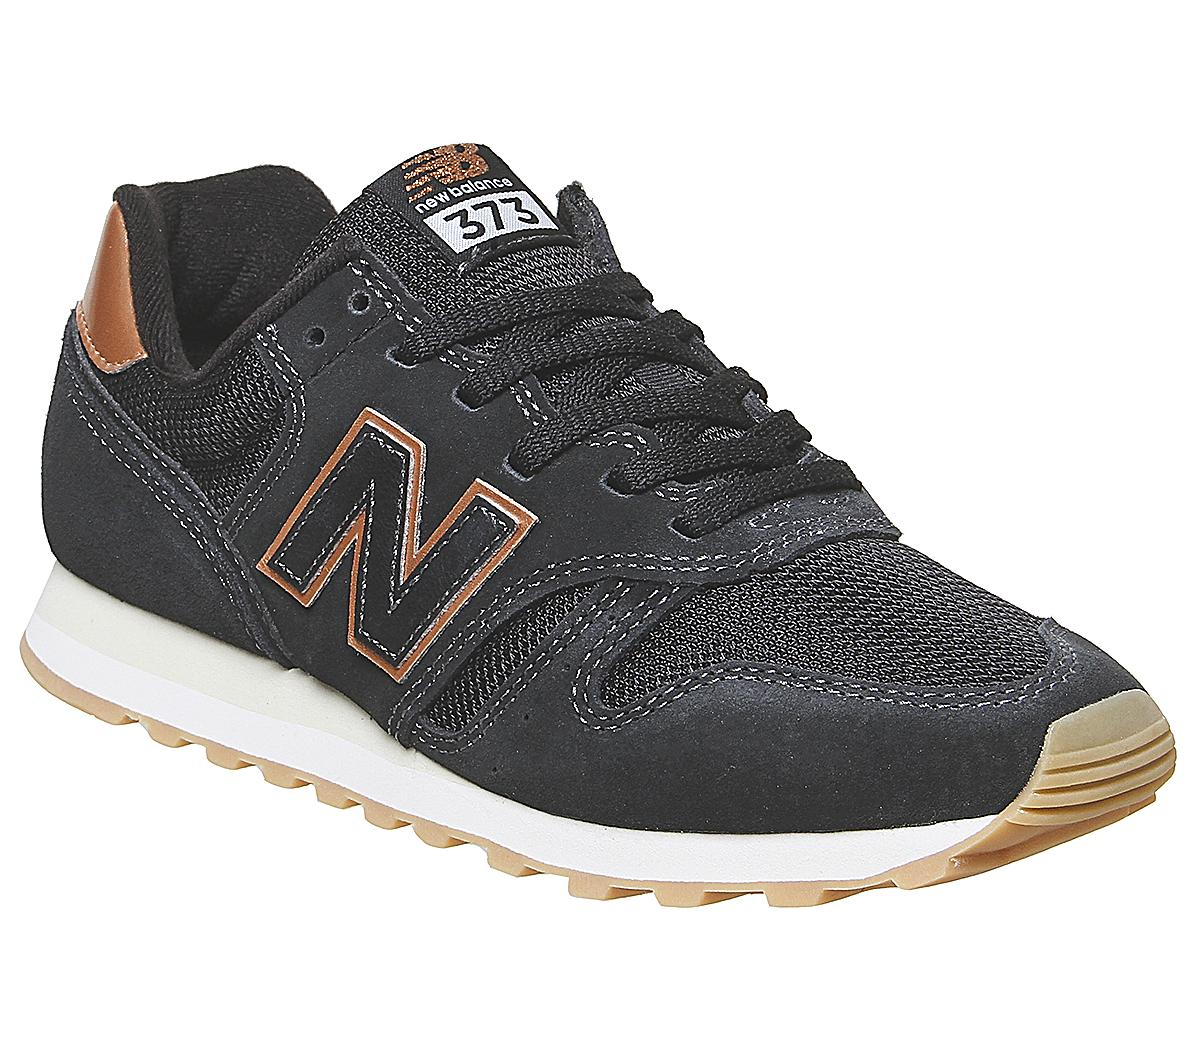 instalaciones Talentoso Monarca  New Balance W373 Trainers Black Rose Gold - Hers trainers